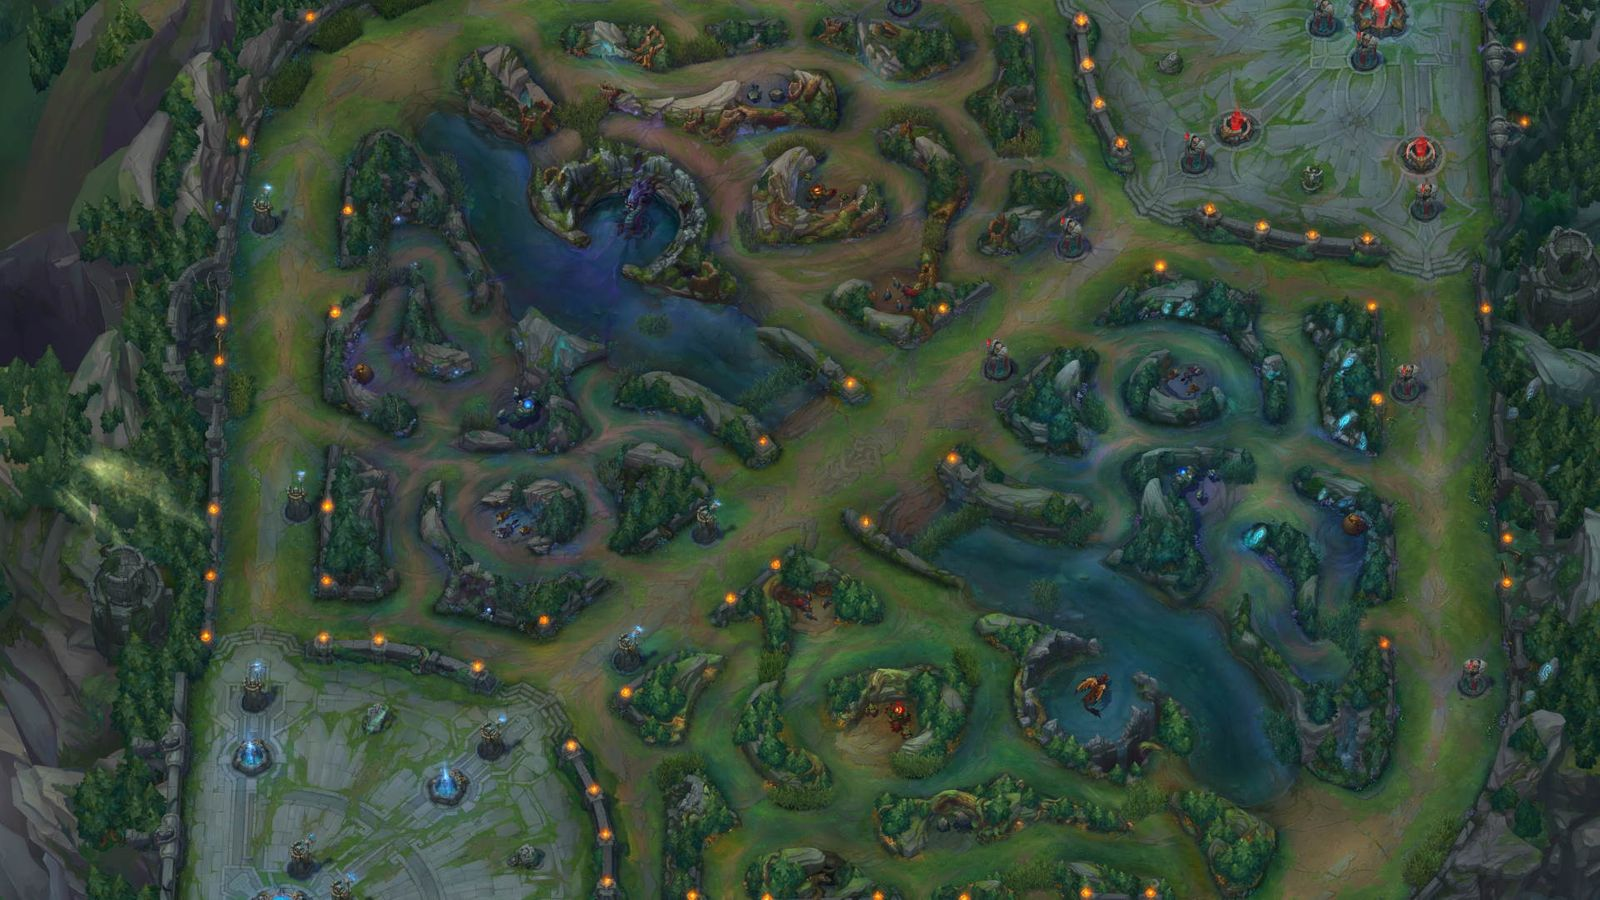 League of Legends: All Maps and Game Modes